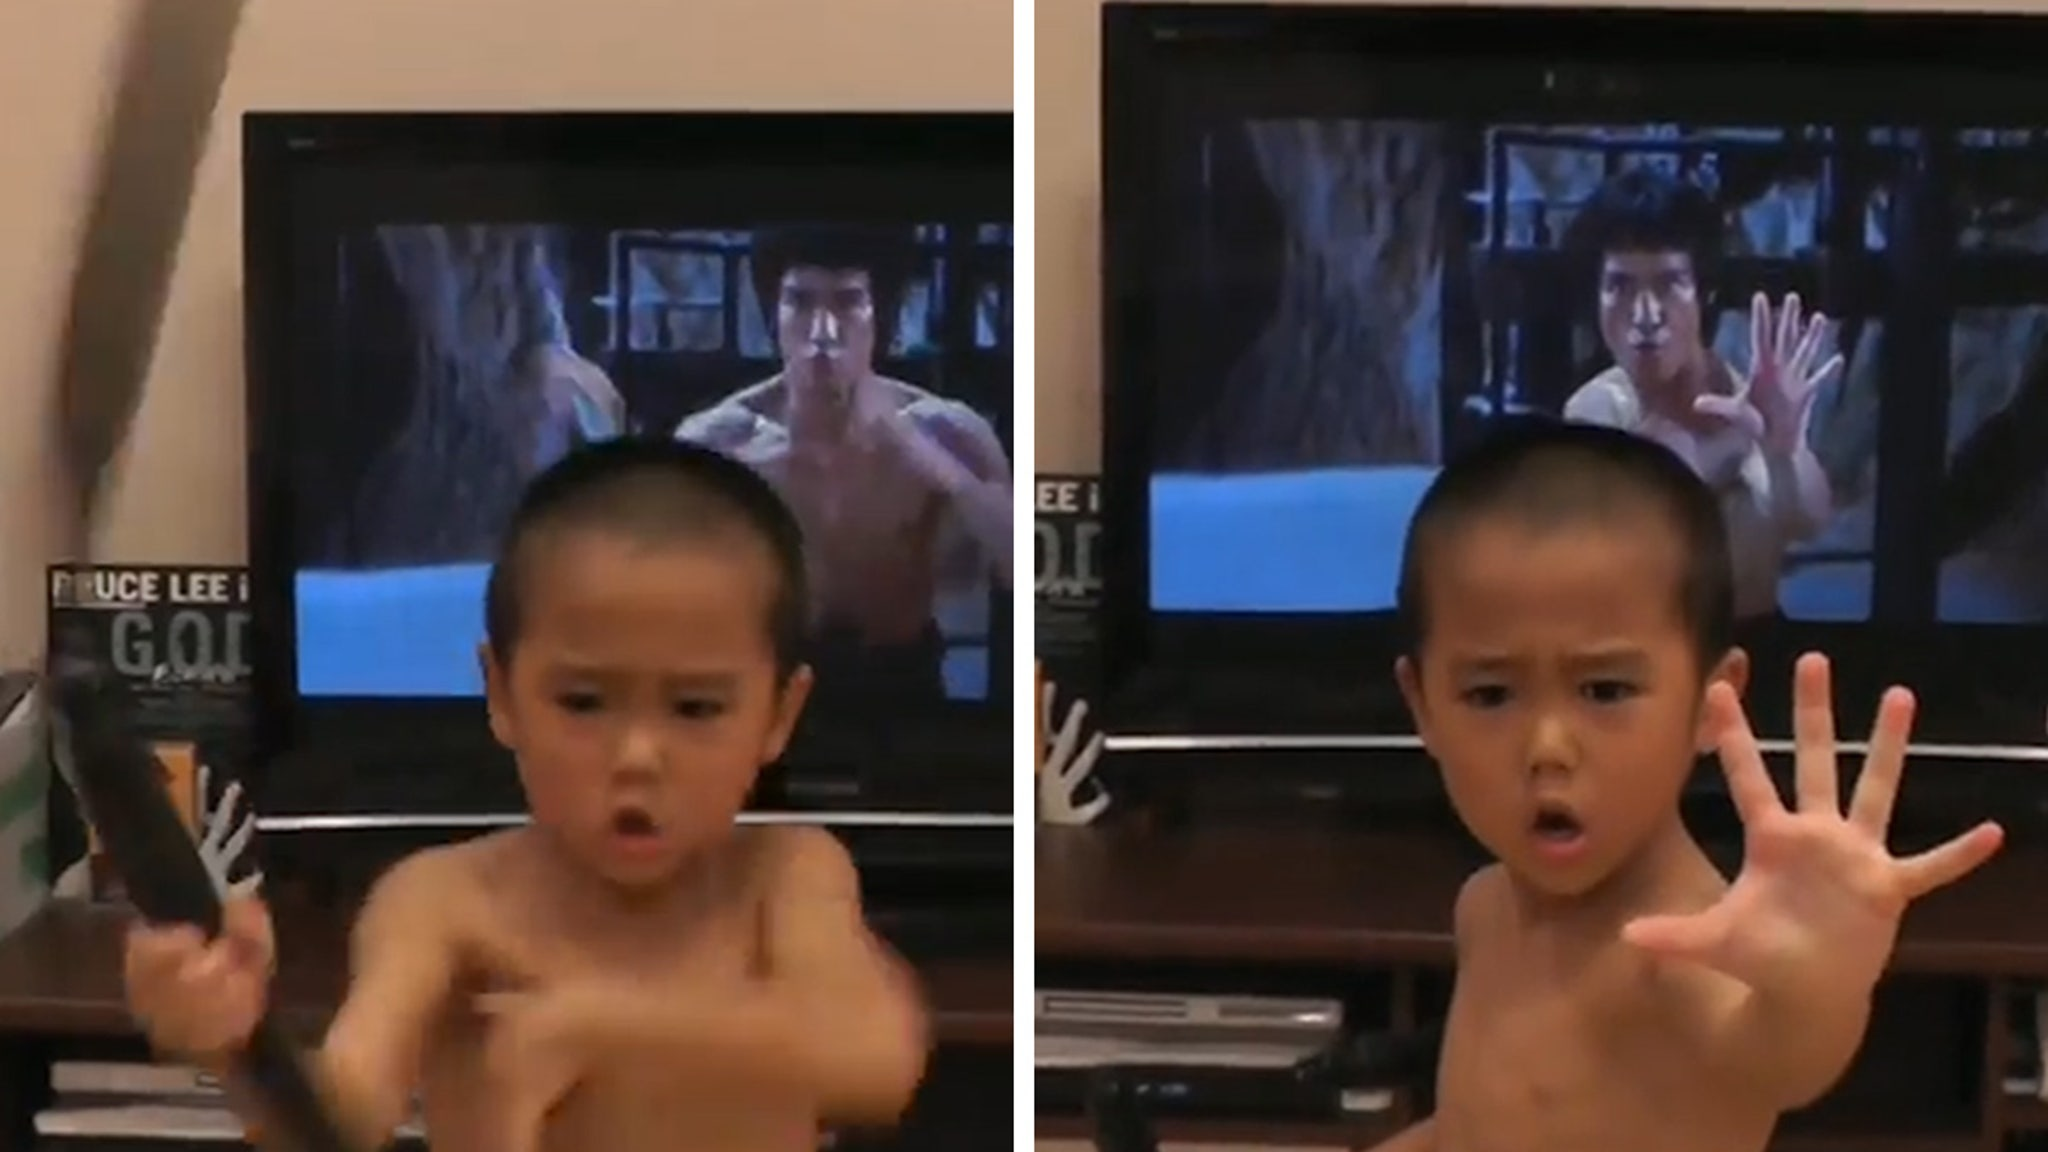 Bruce Lee Little Kid Matches Nunchuck Routine ... Down to a T!!!